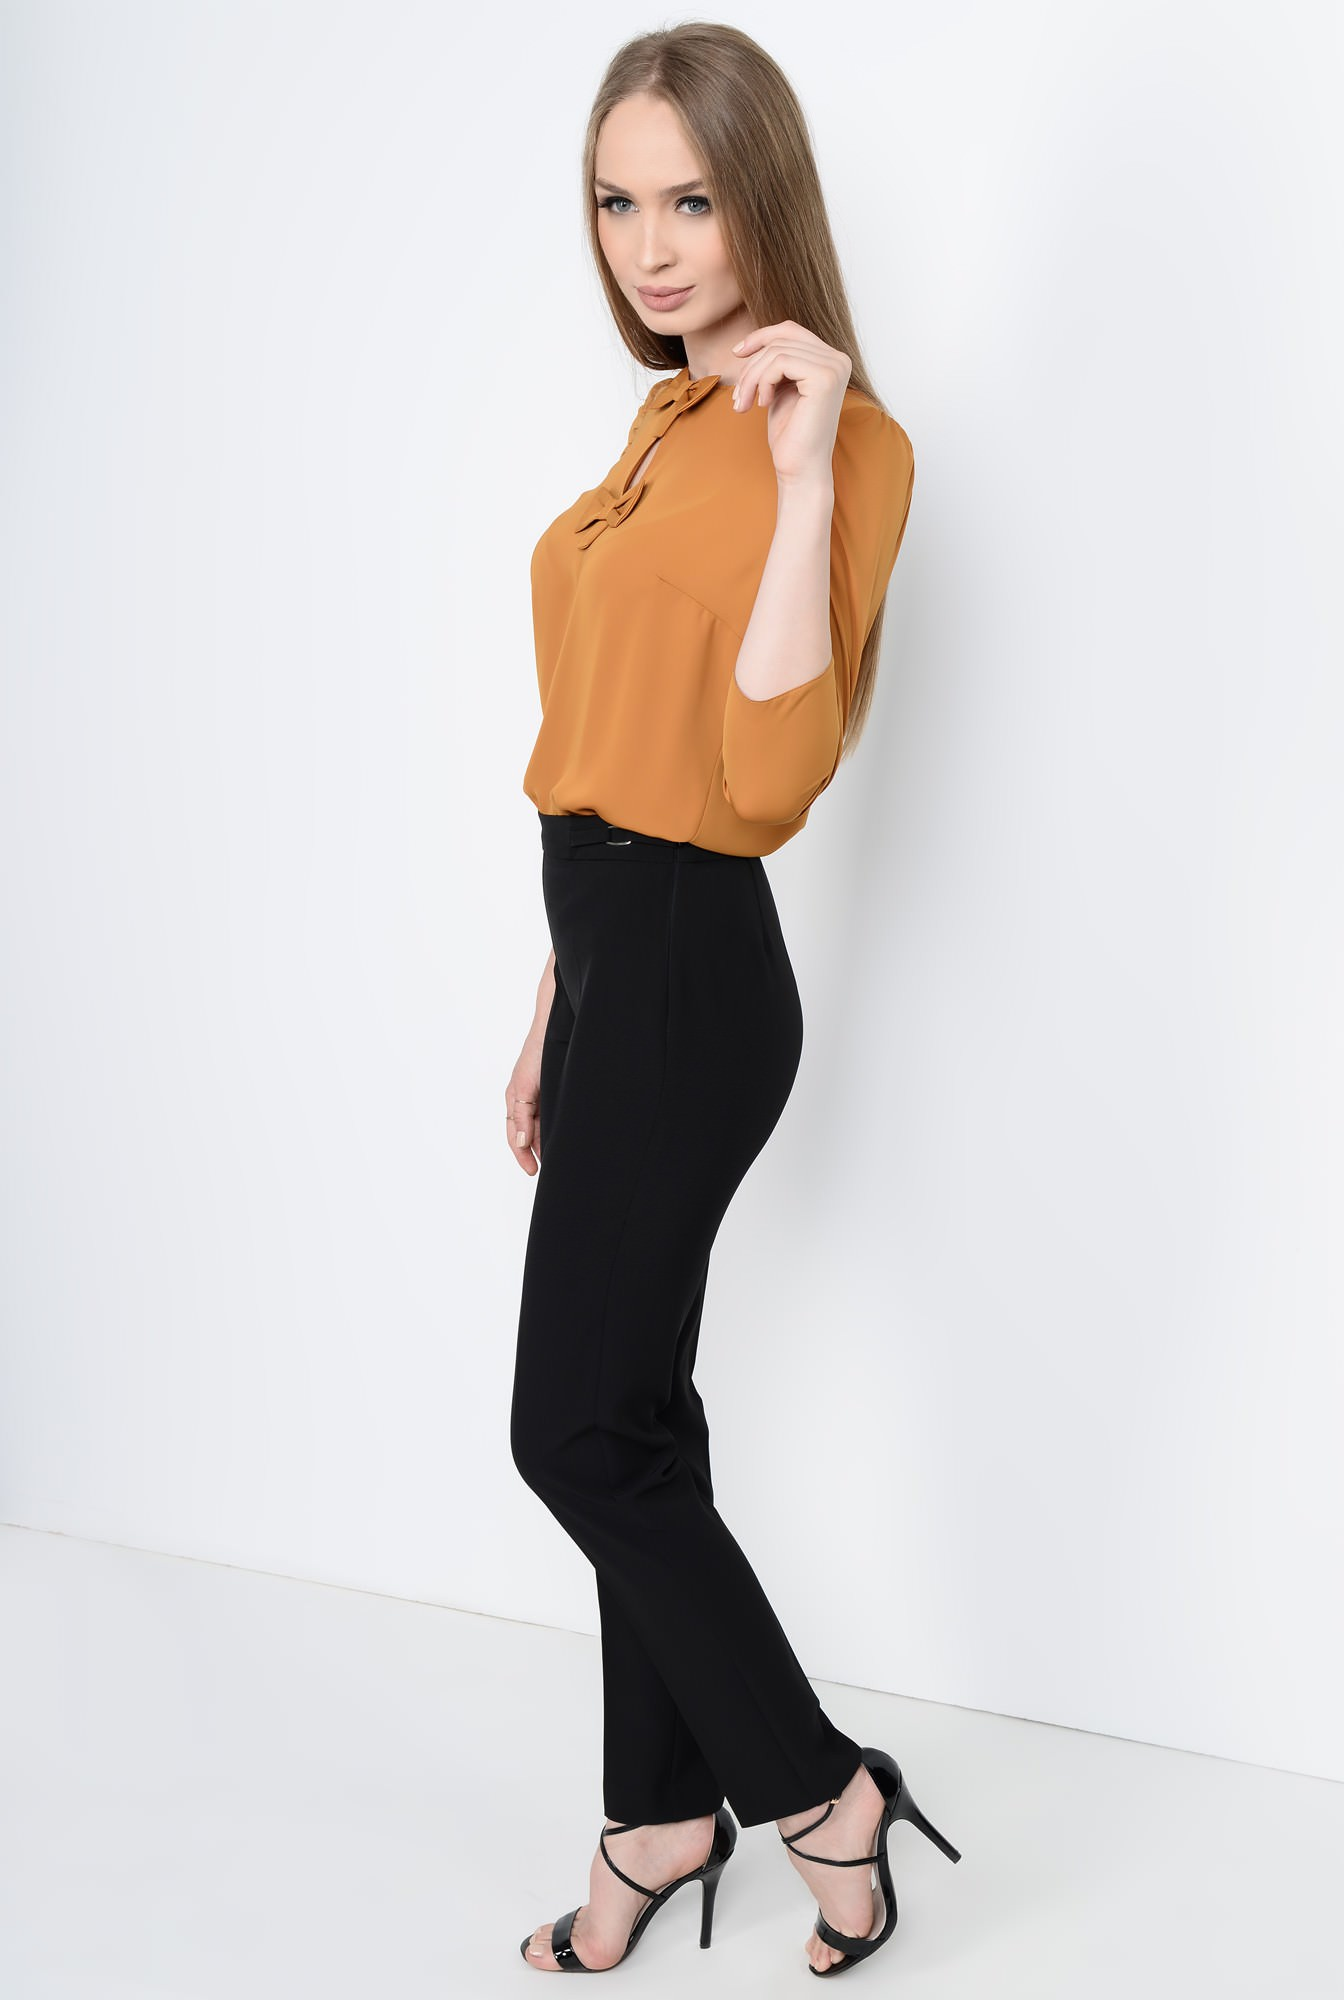 0 - PANTALON OFFICE PT 103-NEGRU